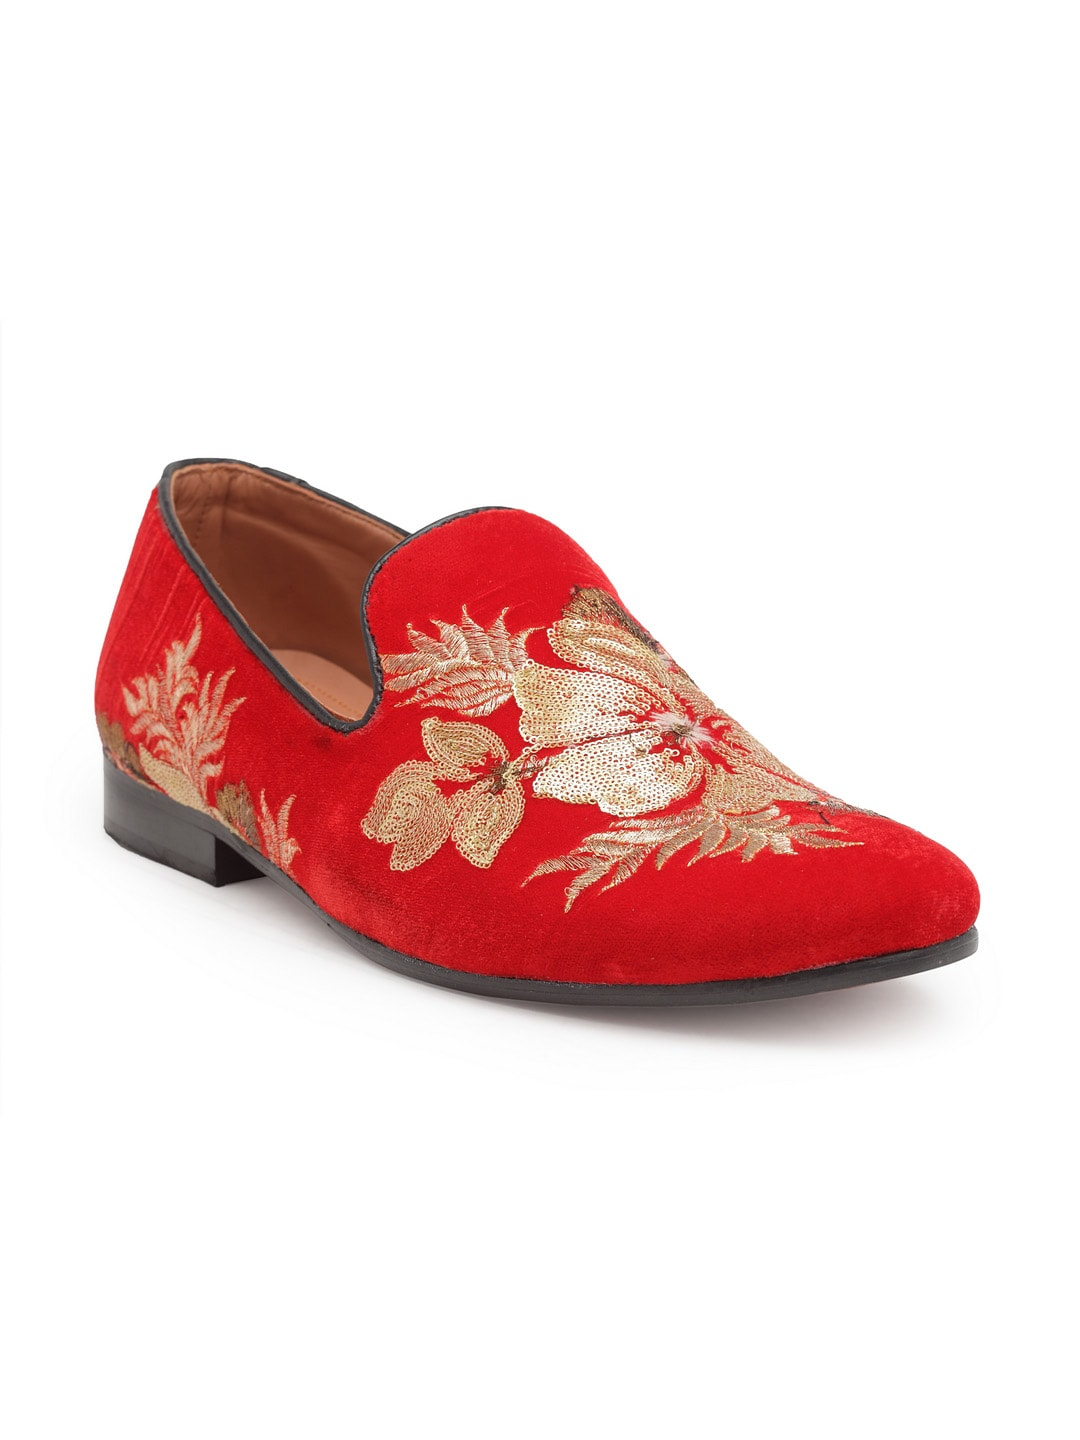 82f77cc75b2 Red Loafers - Buy Red Loafers online in India